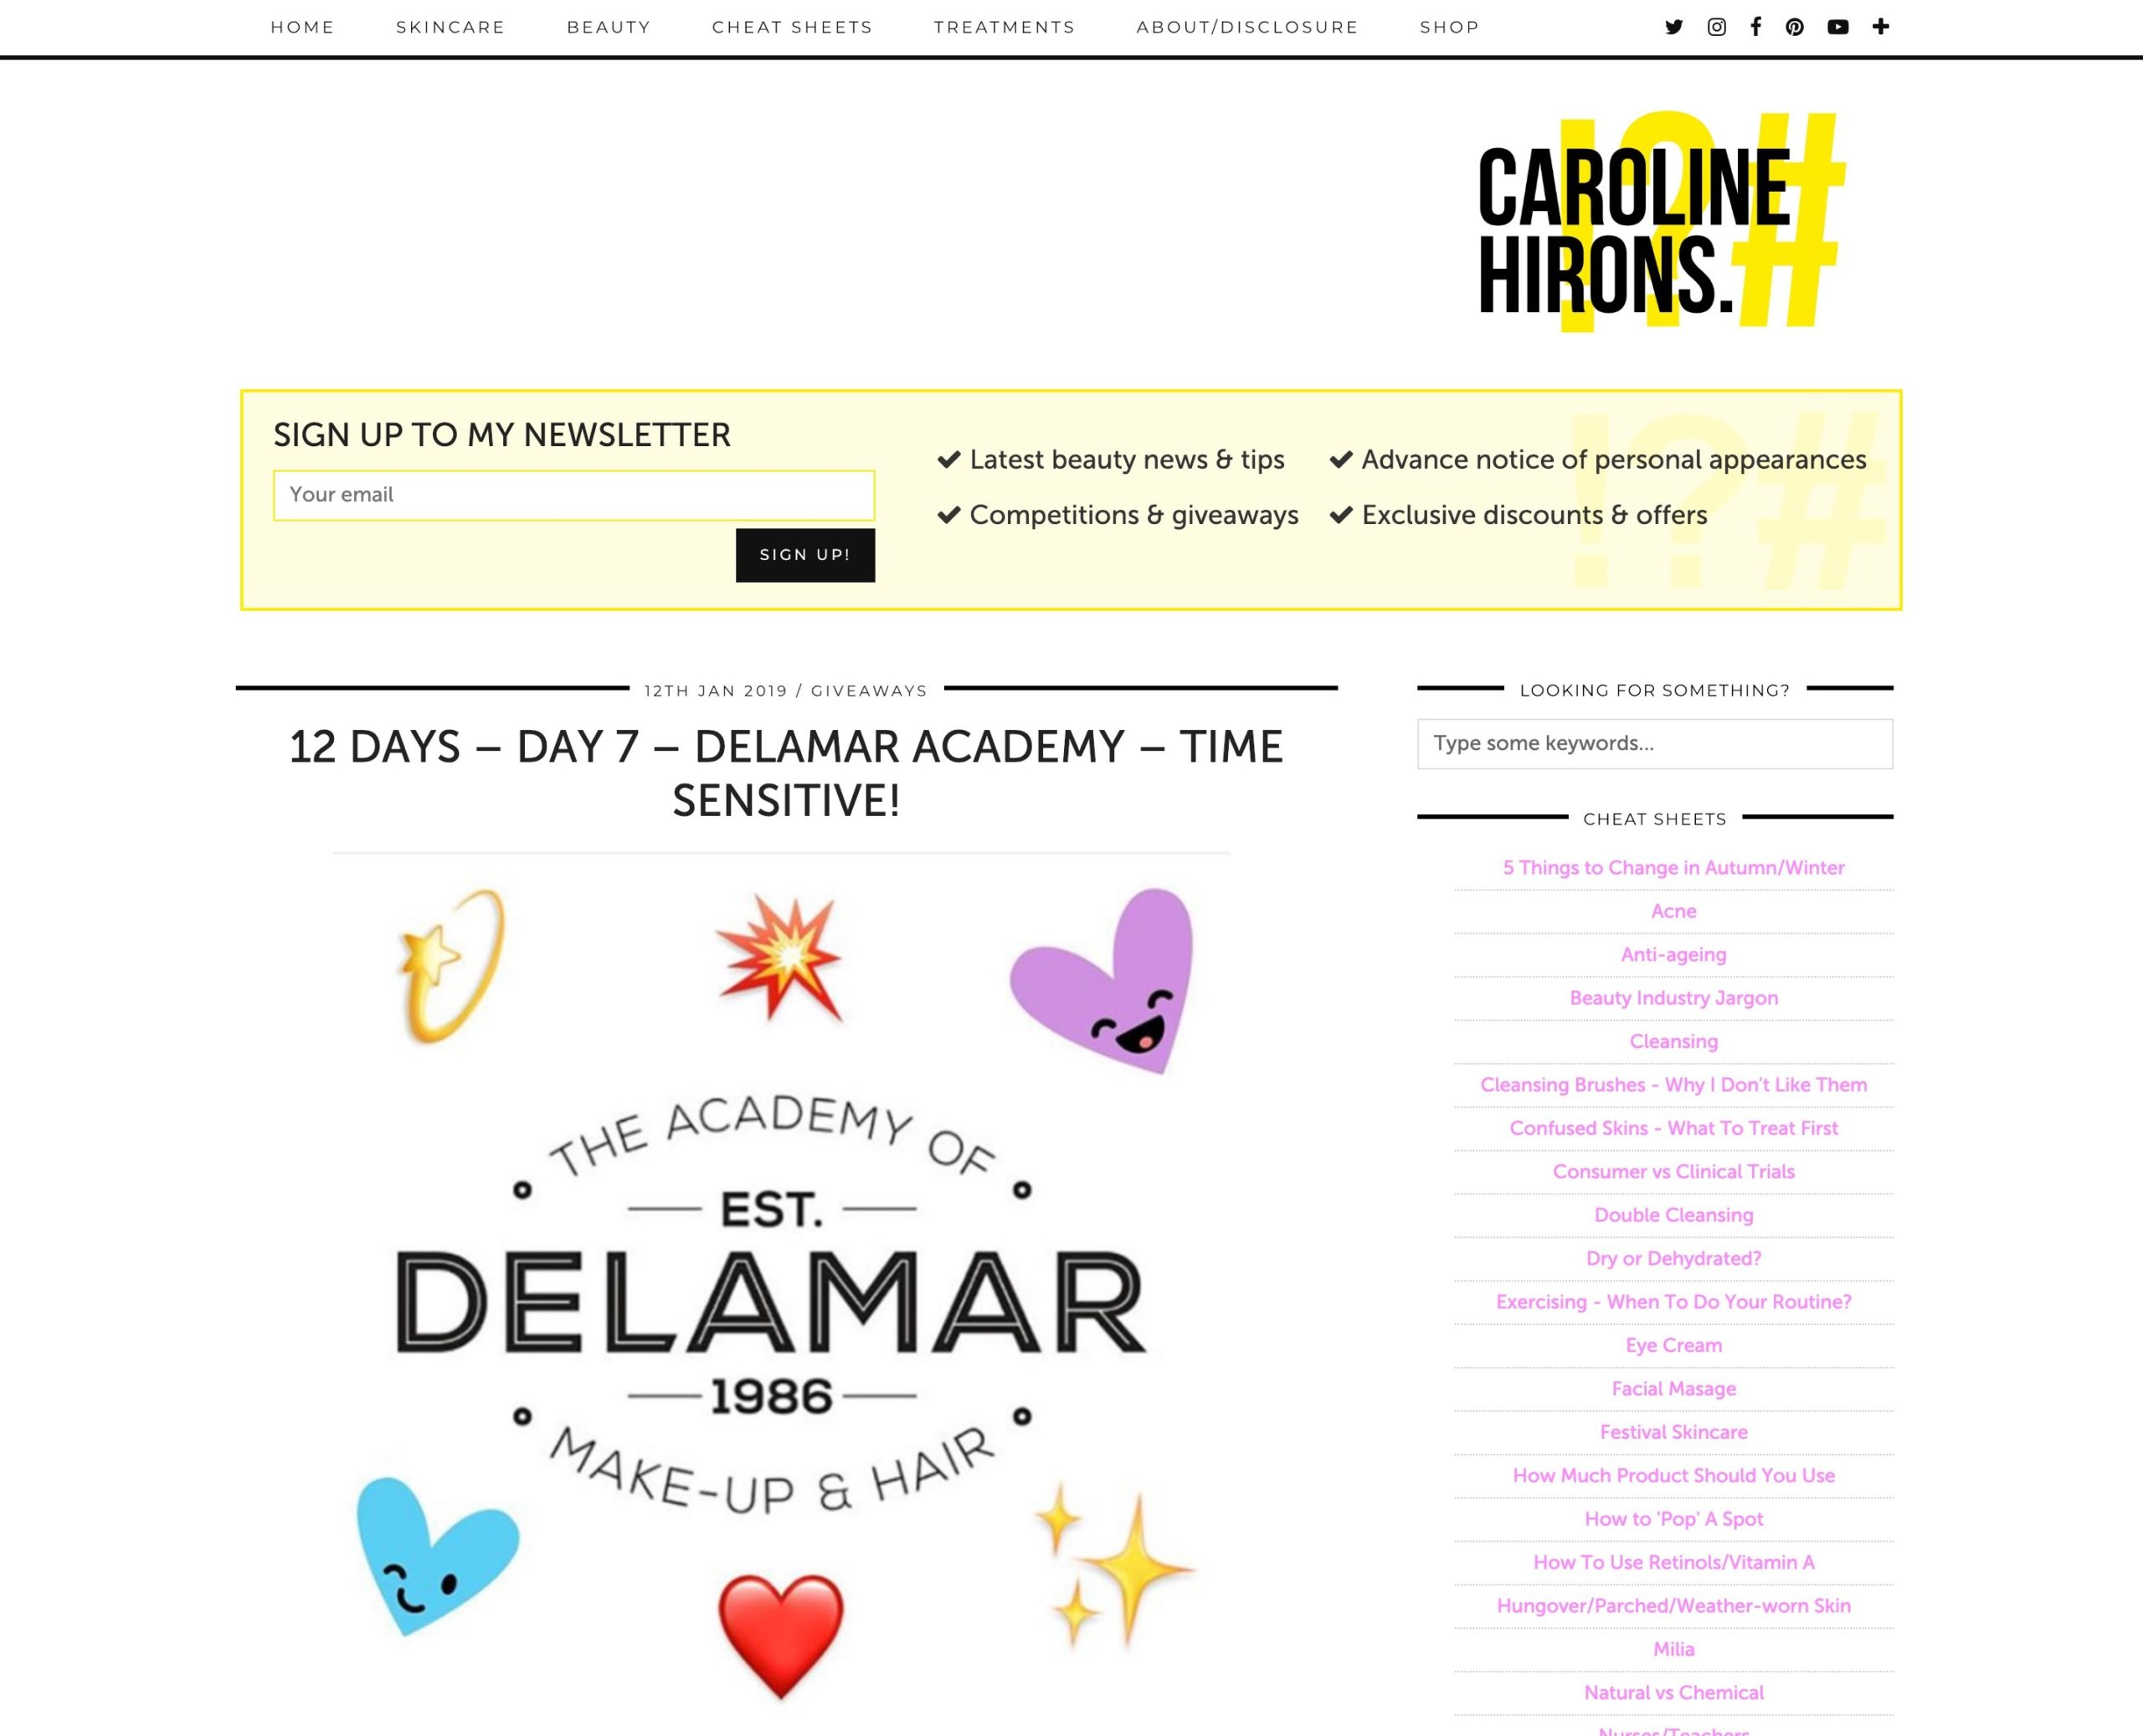 Caroline Hirons gives away a course at Delamar Academy